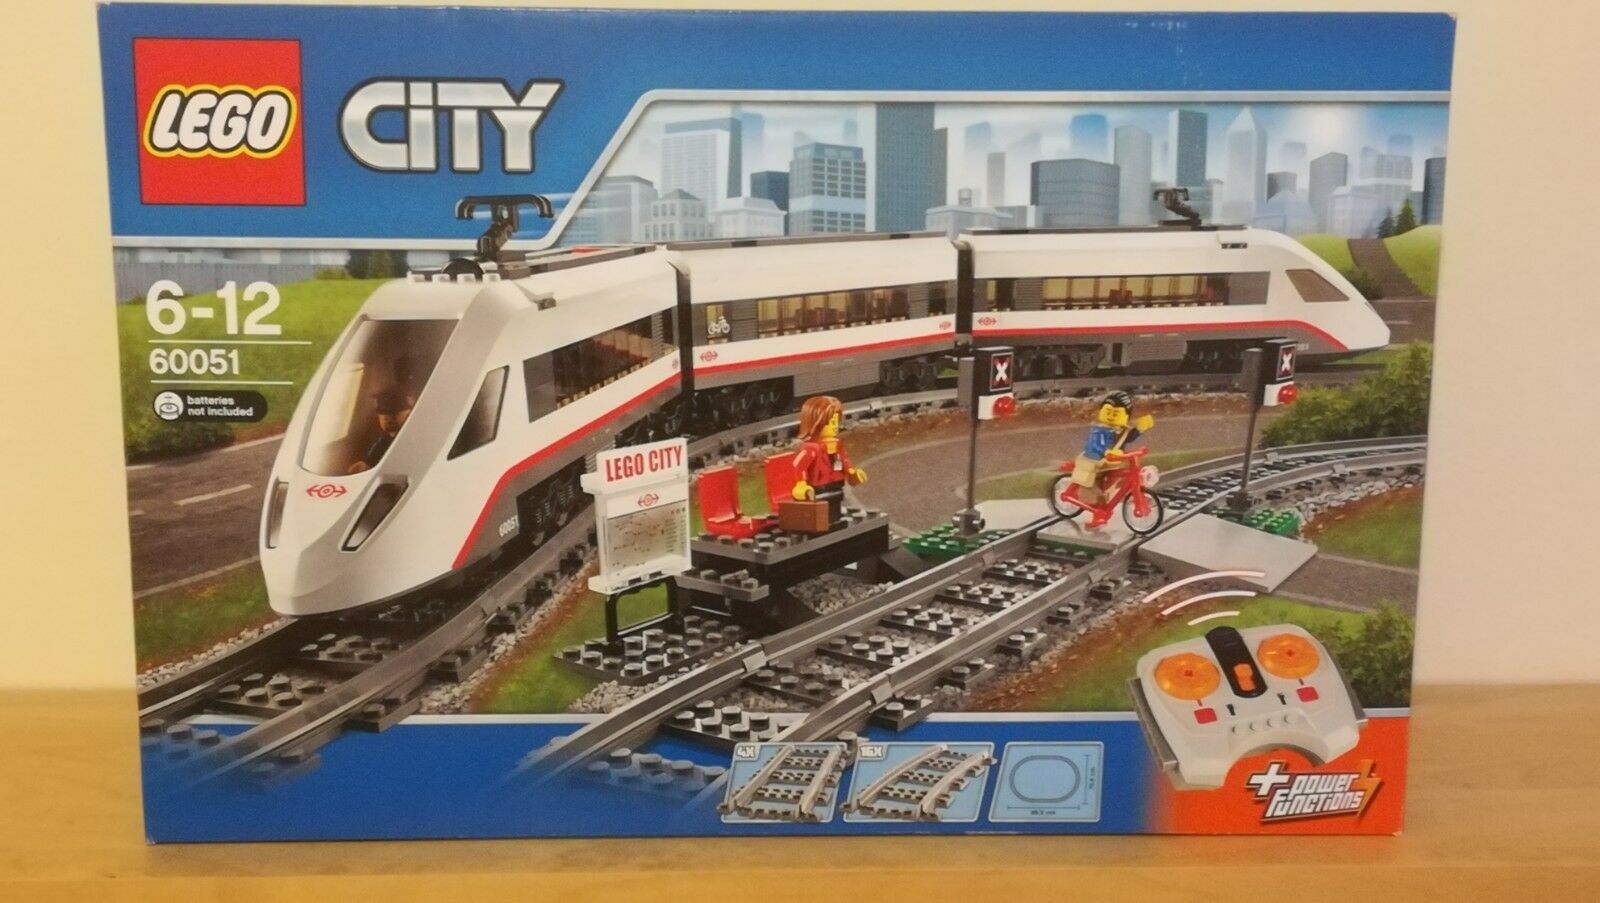 LEGO City 60051 HIGH-SPEED PASSENGER TRAIN - - Brand new - TRAIN Trains ce18bd